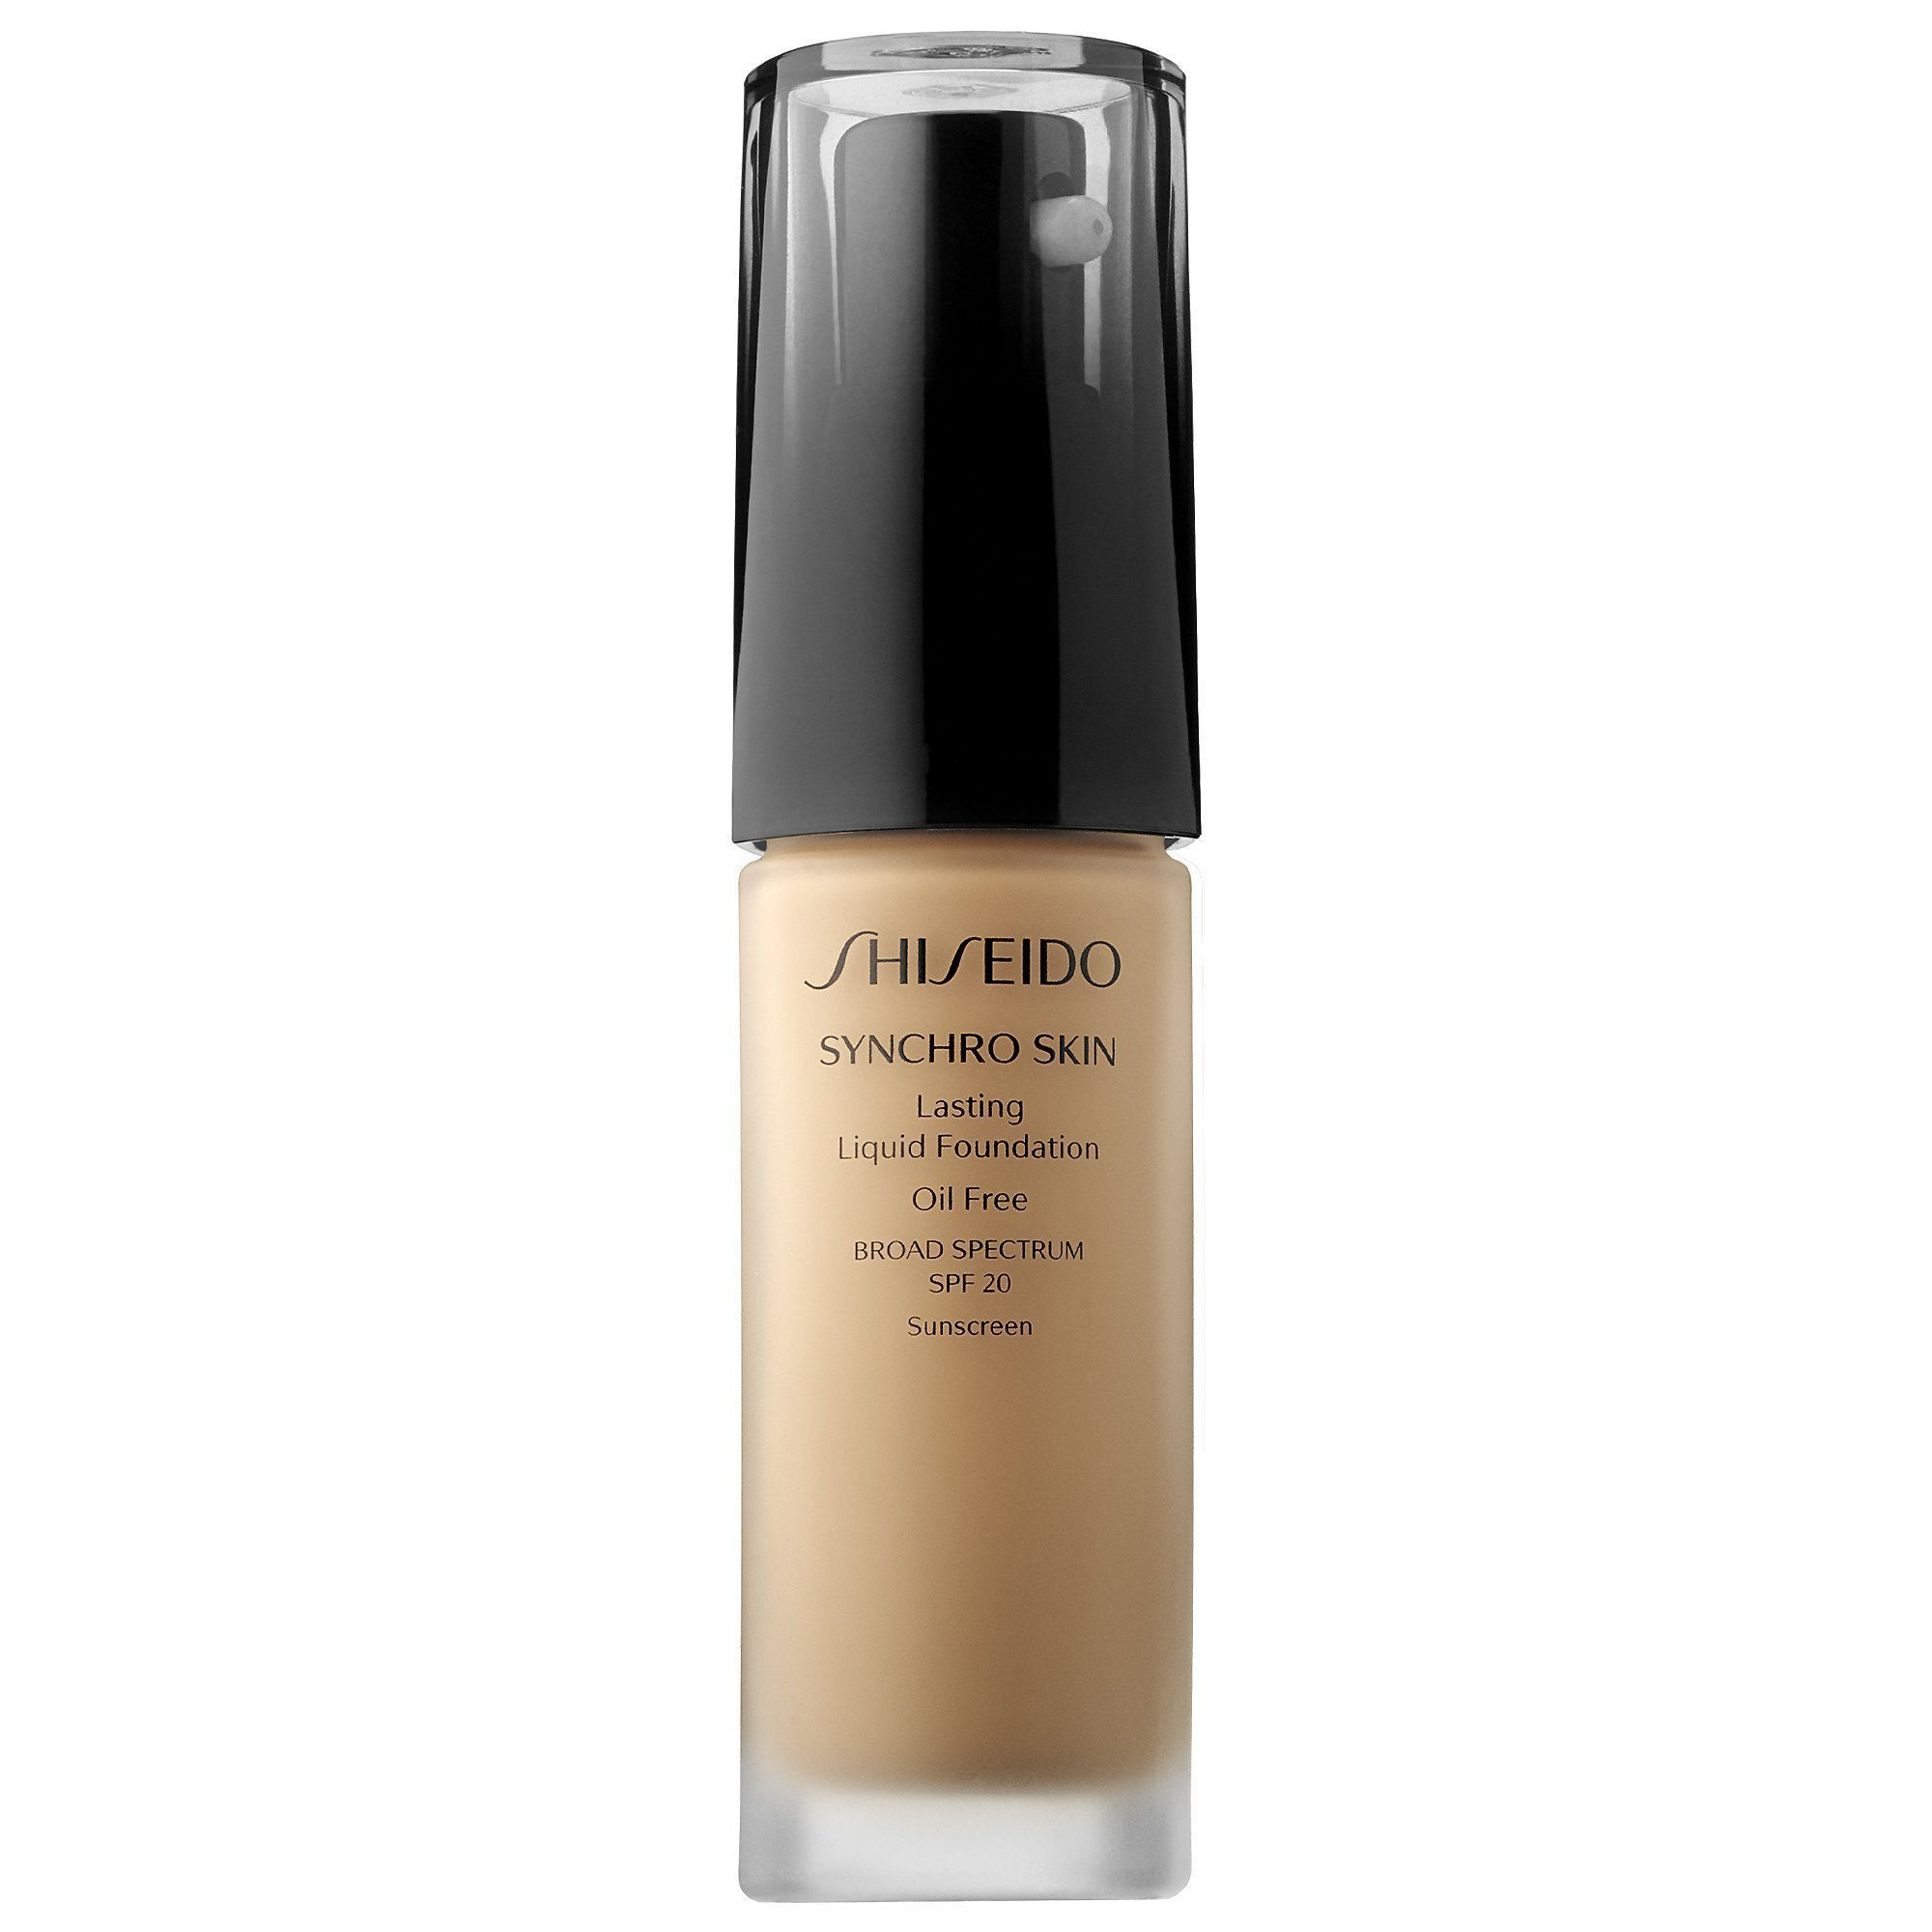 Shiseidos Synchro Skin Lasting Liquid Foundation Broad Spectrum SPF 20 at Sephora It provides medium buildable coverage and is long lastingShop Shiseidos Synchro Skin Las...